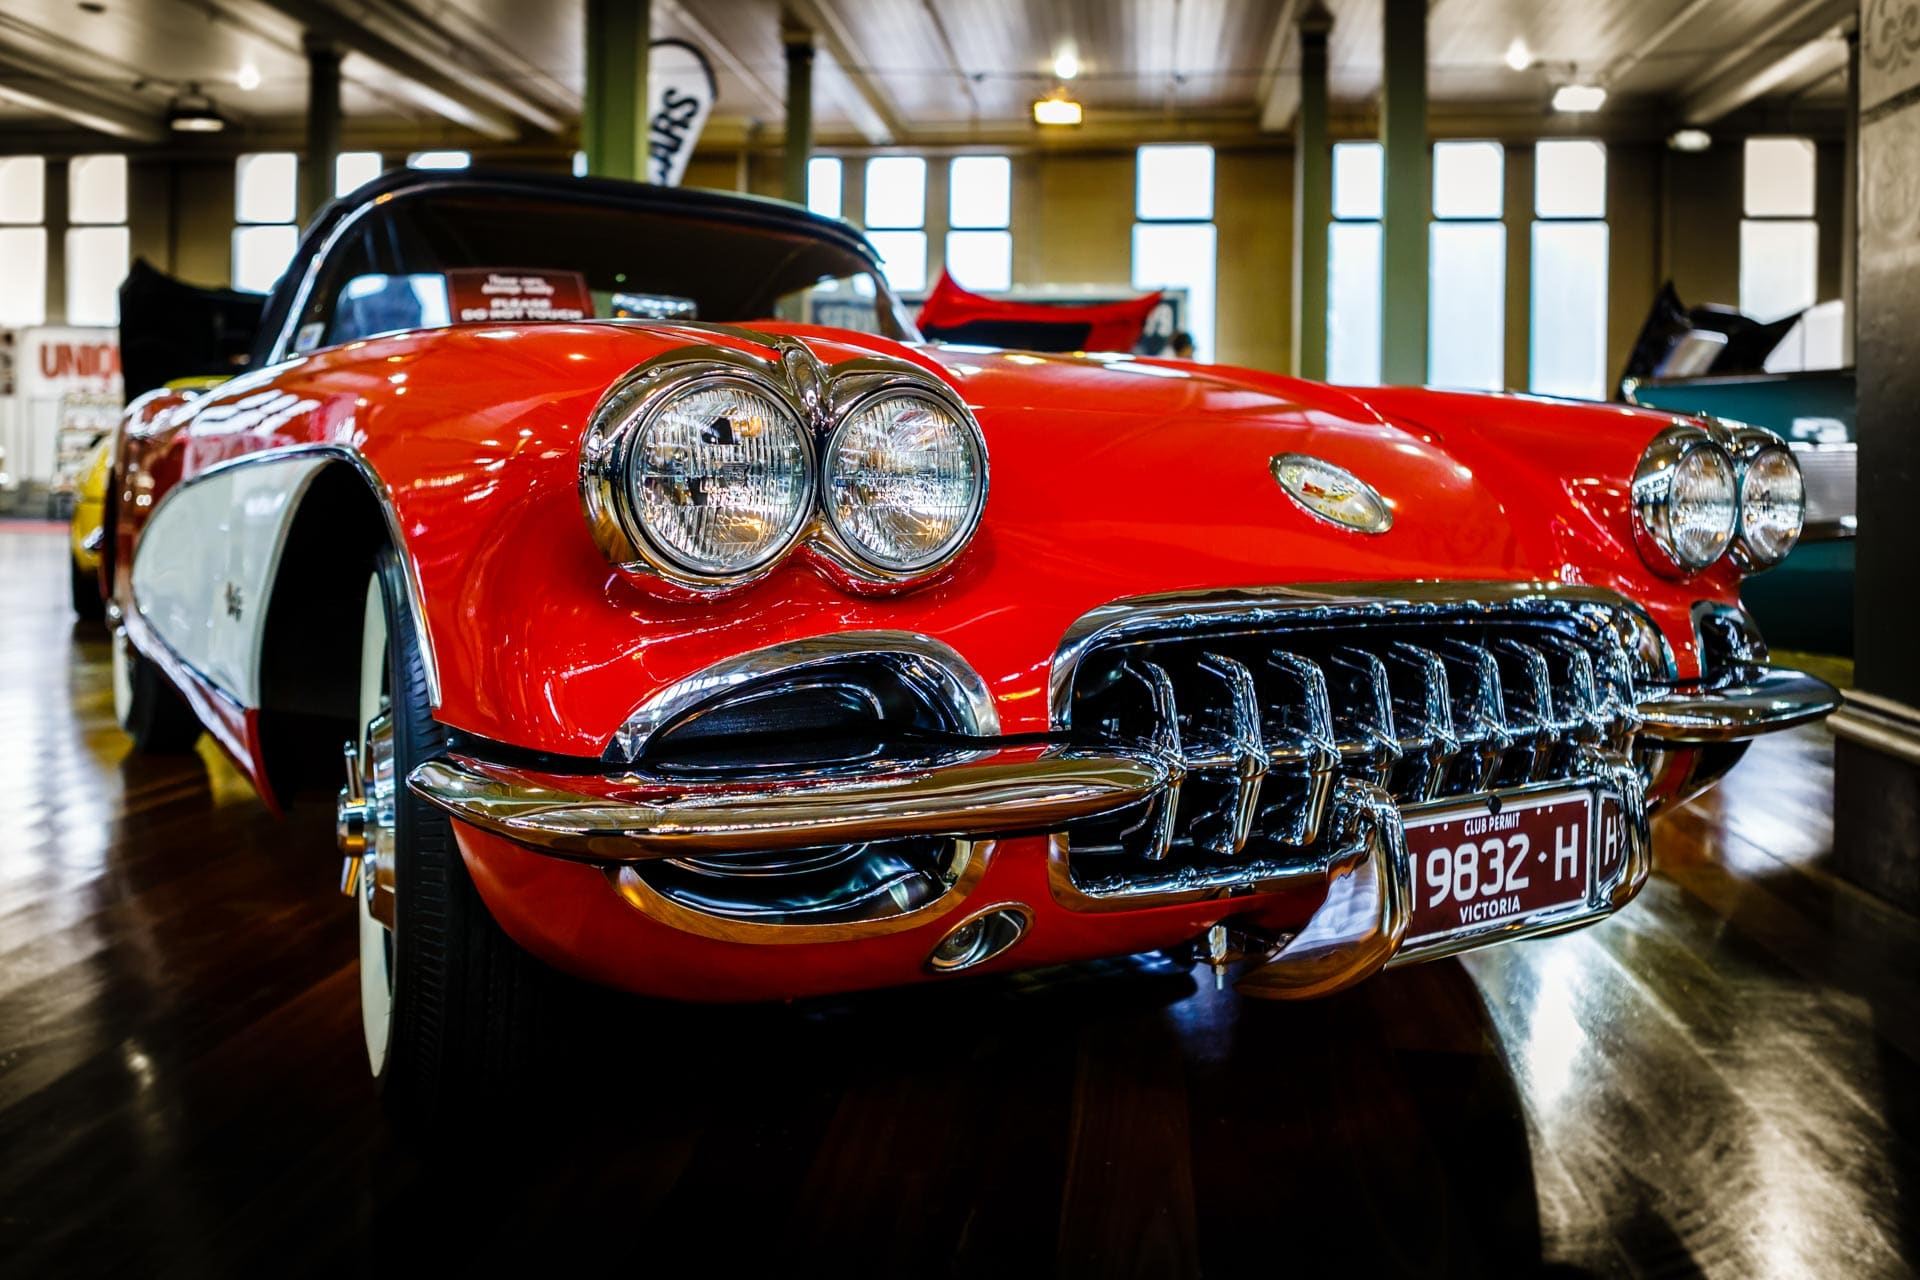 red corvette cabriolet classic car at motorclassico car show in melbourne